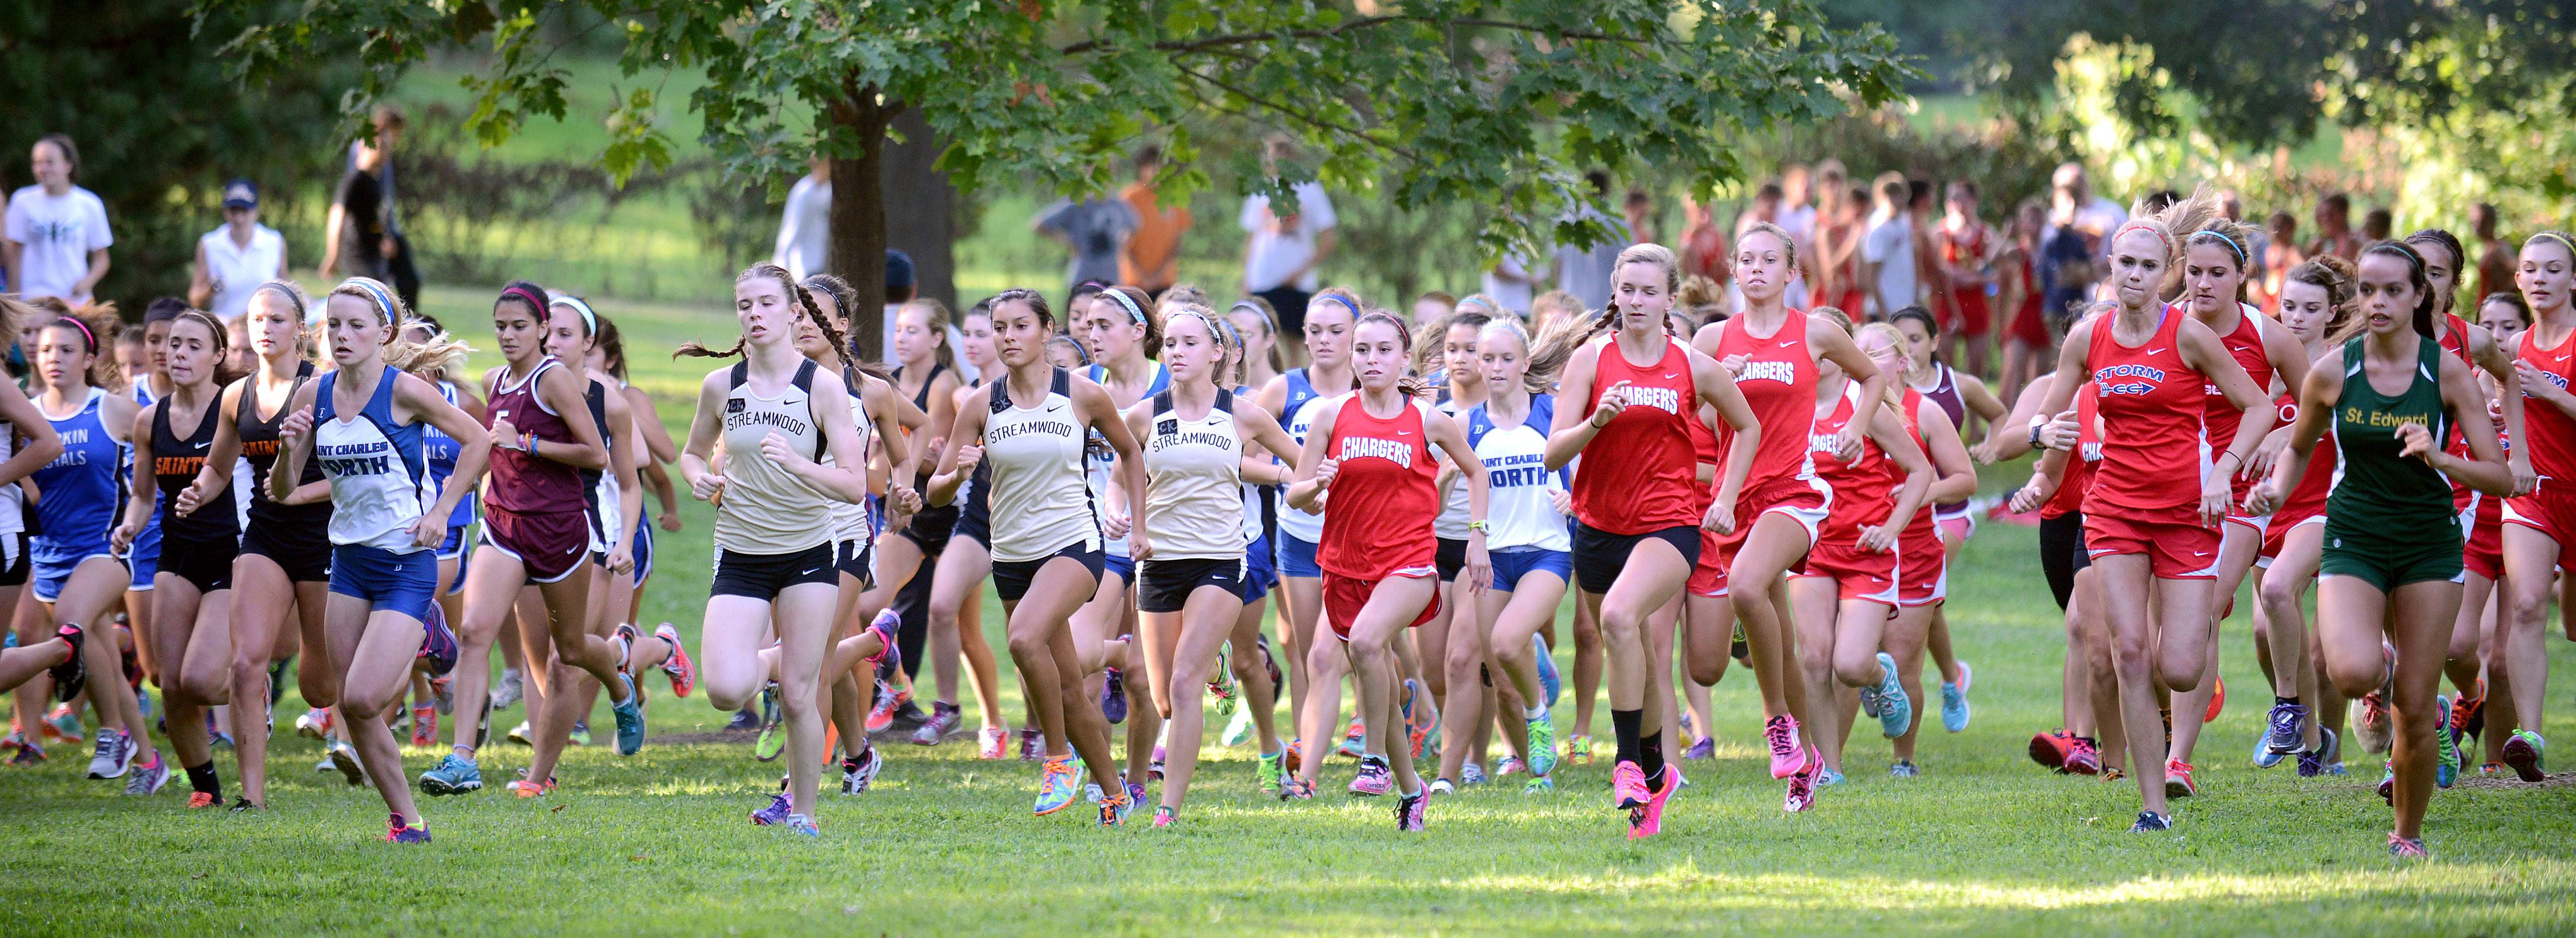 Girls varsity takes off from the starting line at the Elgin Invite cross country meet at Lords Park in Elgin on Tuesday.